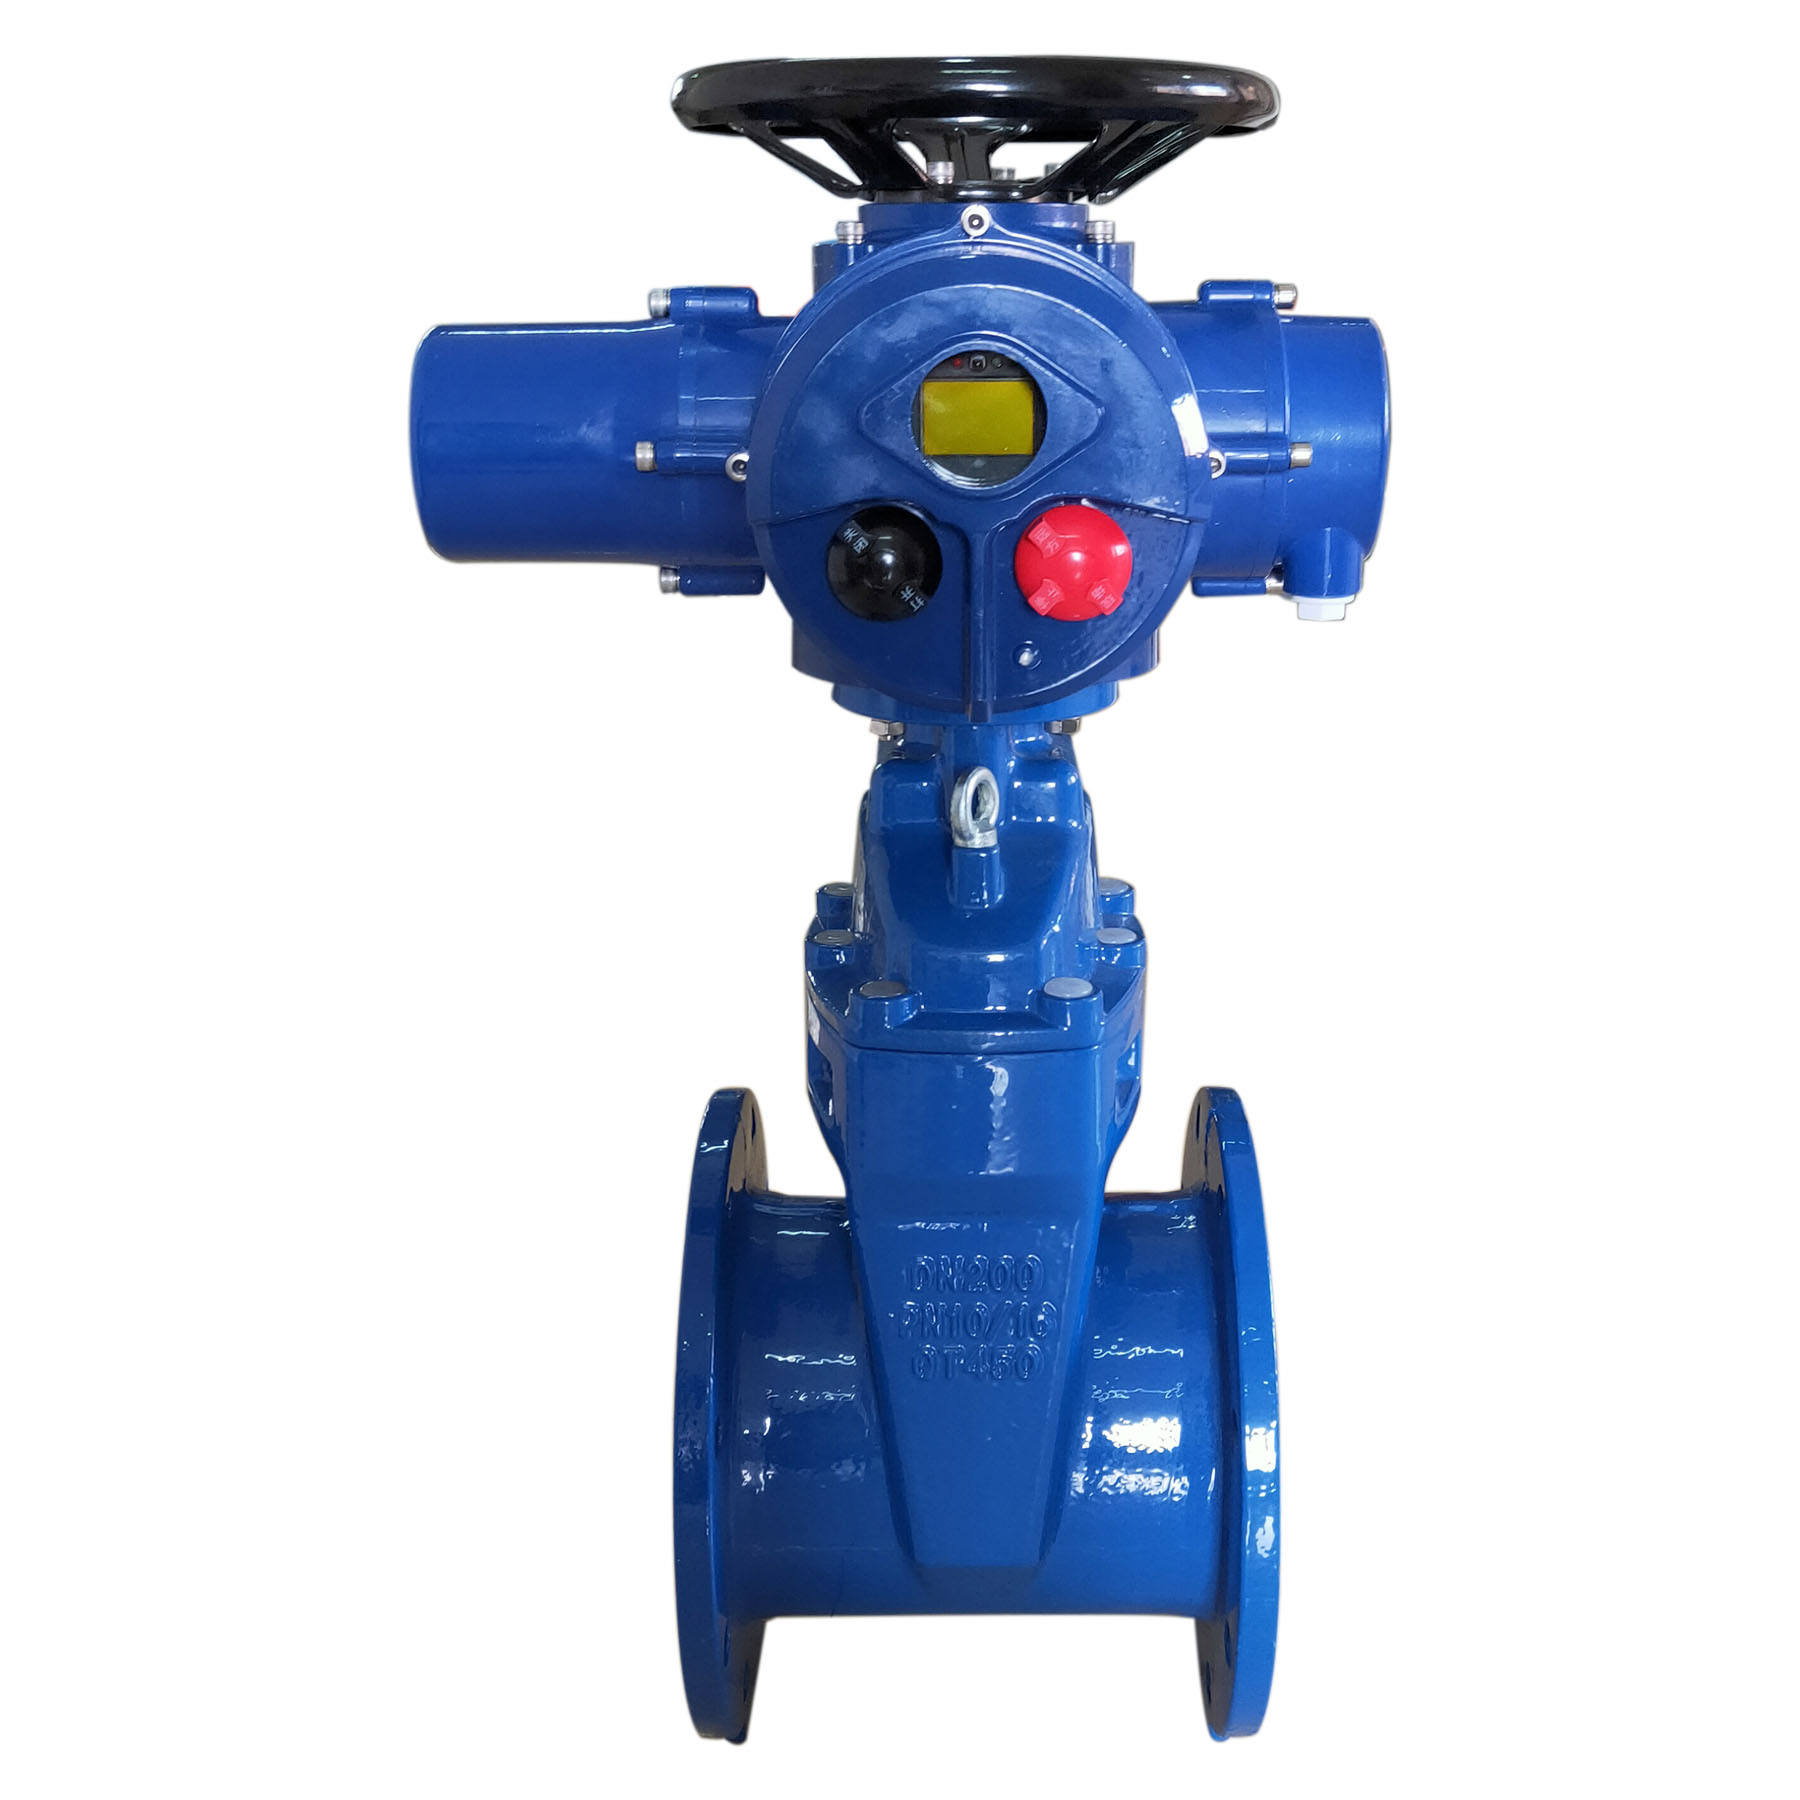 Intelligent remote control multi-turn electric actuator 380v 220v gate valve pn16 flange end ductile iron